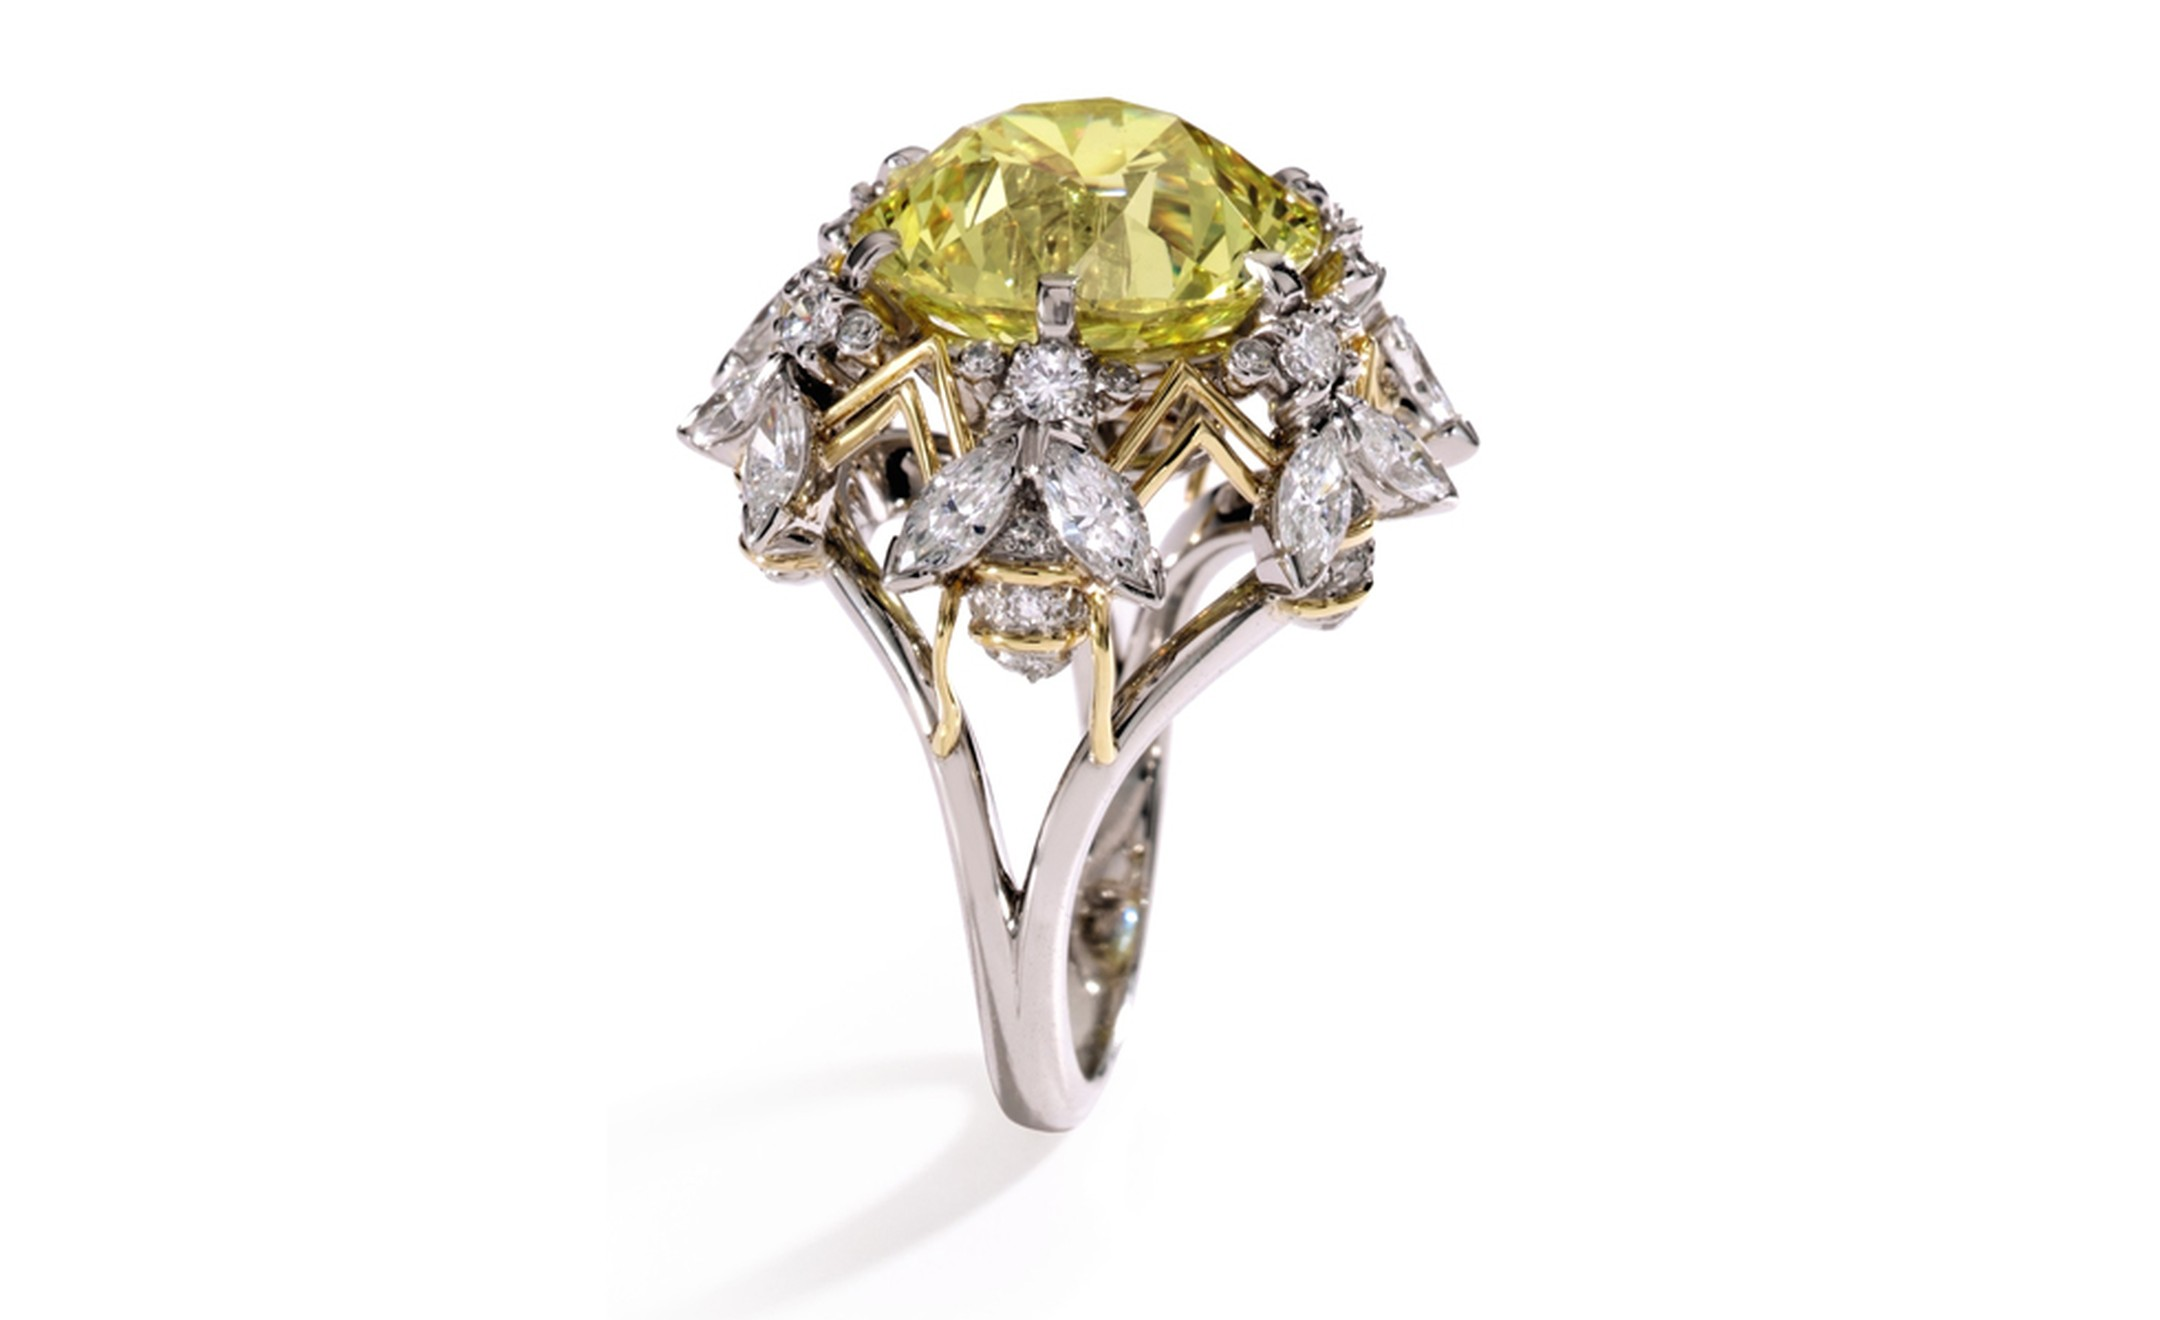 Lot 187 Platinum, 18 Karat Gold, Fancy Vivid Yellow Diamond and Near Colorless Diamond Ring, Schlumberger for Tiffany & Co., 1972 Est. $500/700,000. SOLD FOR $1,082,500